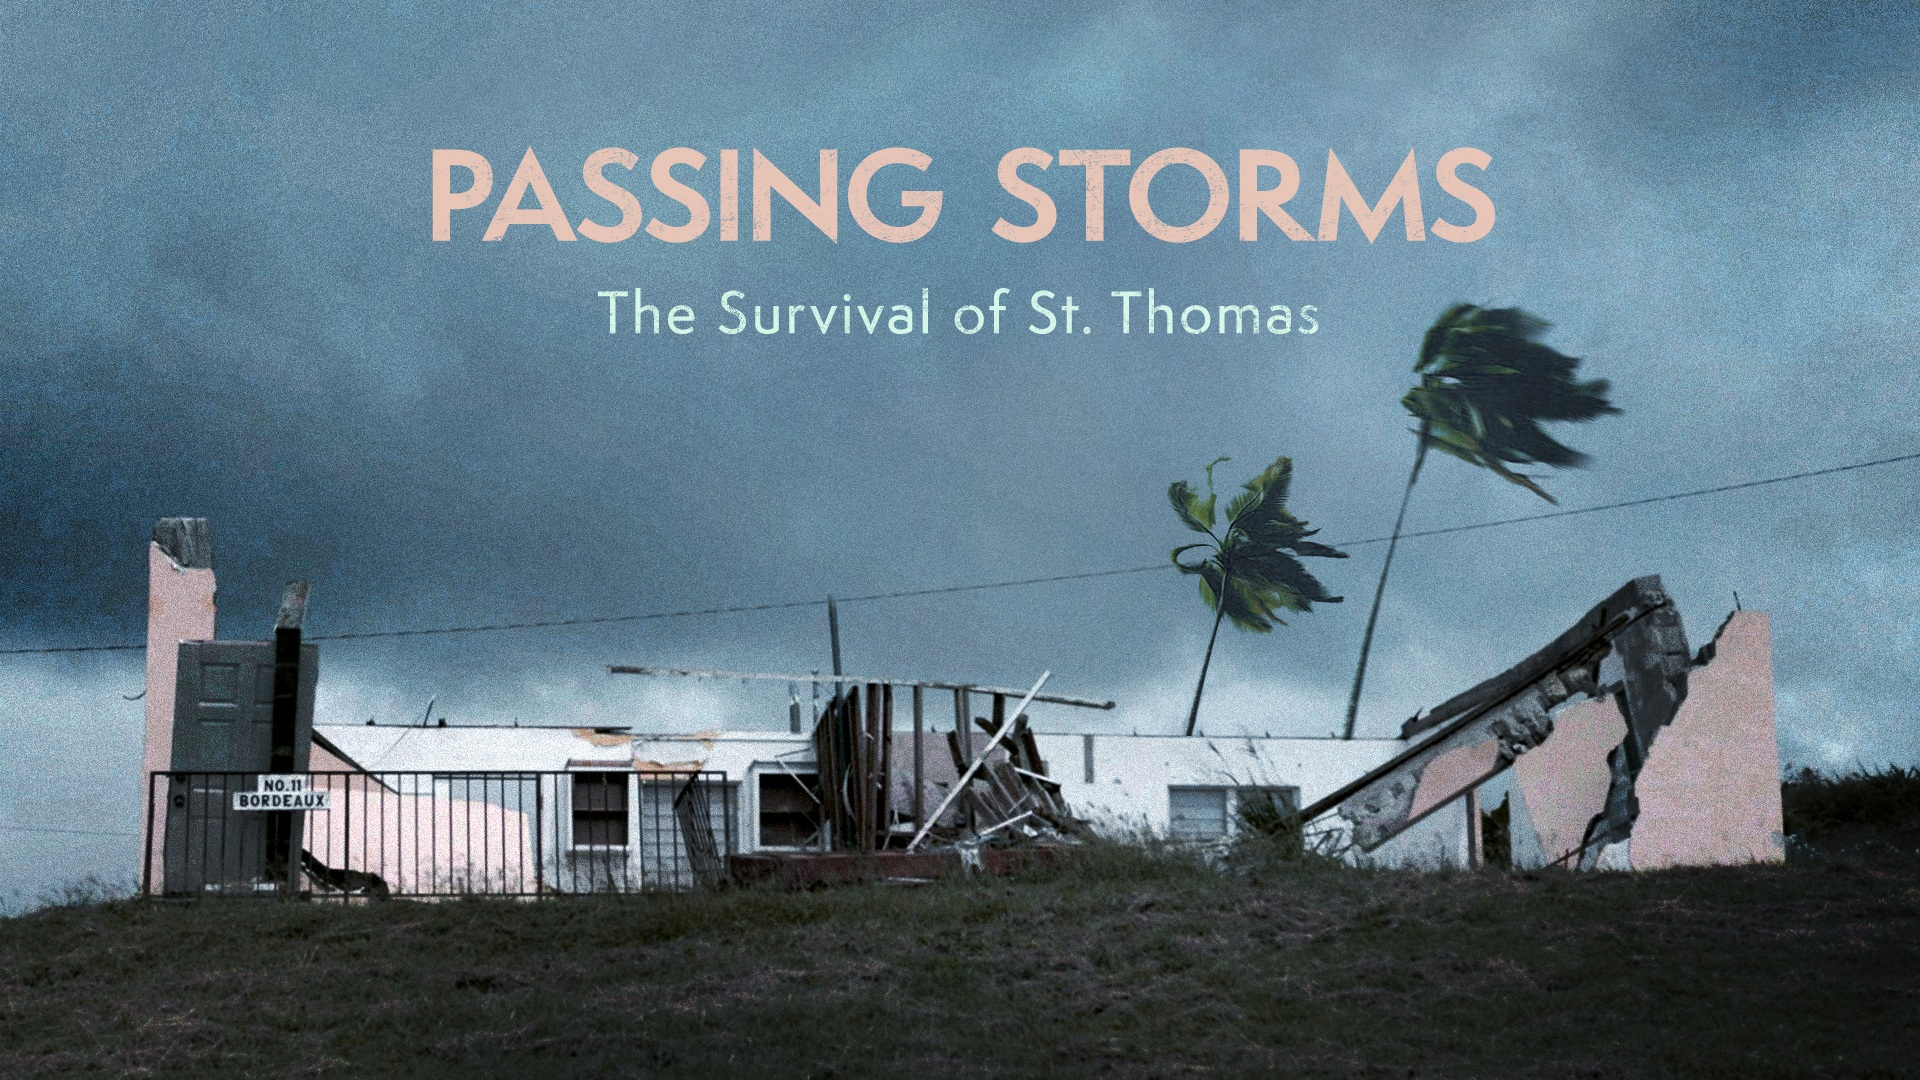 The Survival of St. Thomas